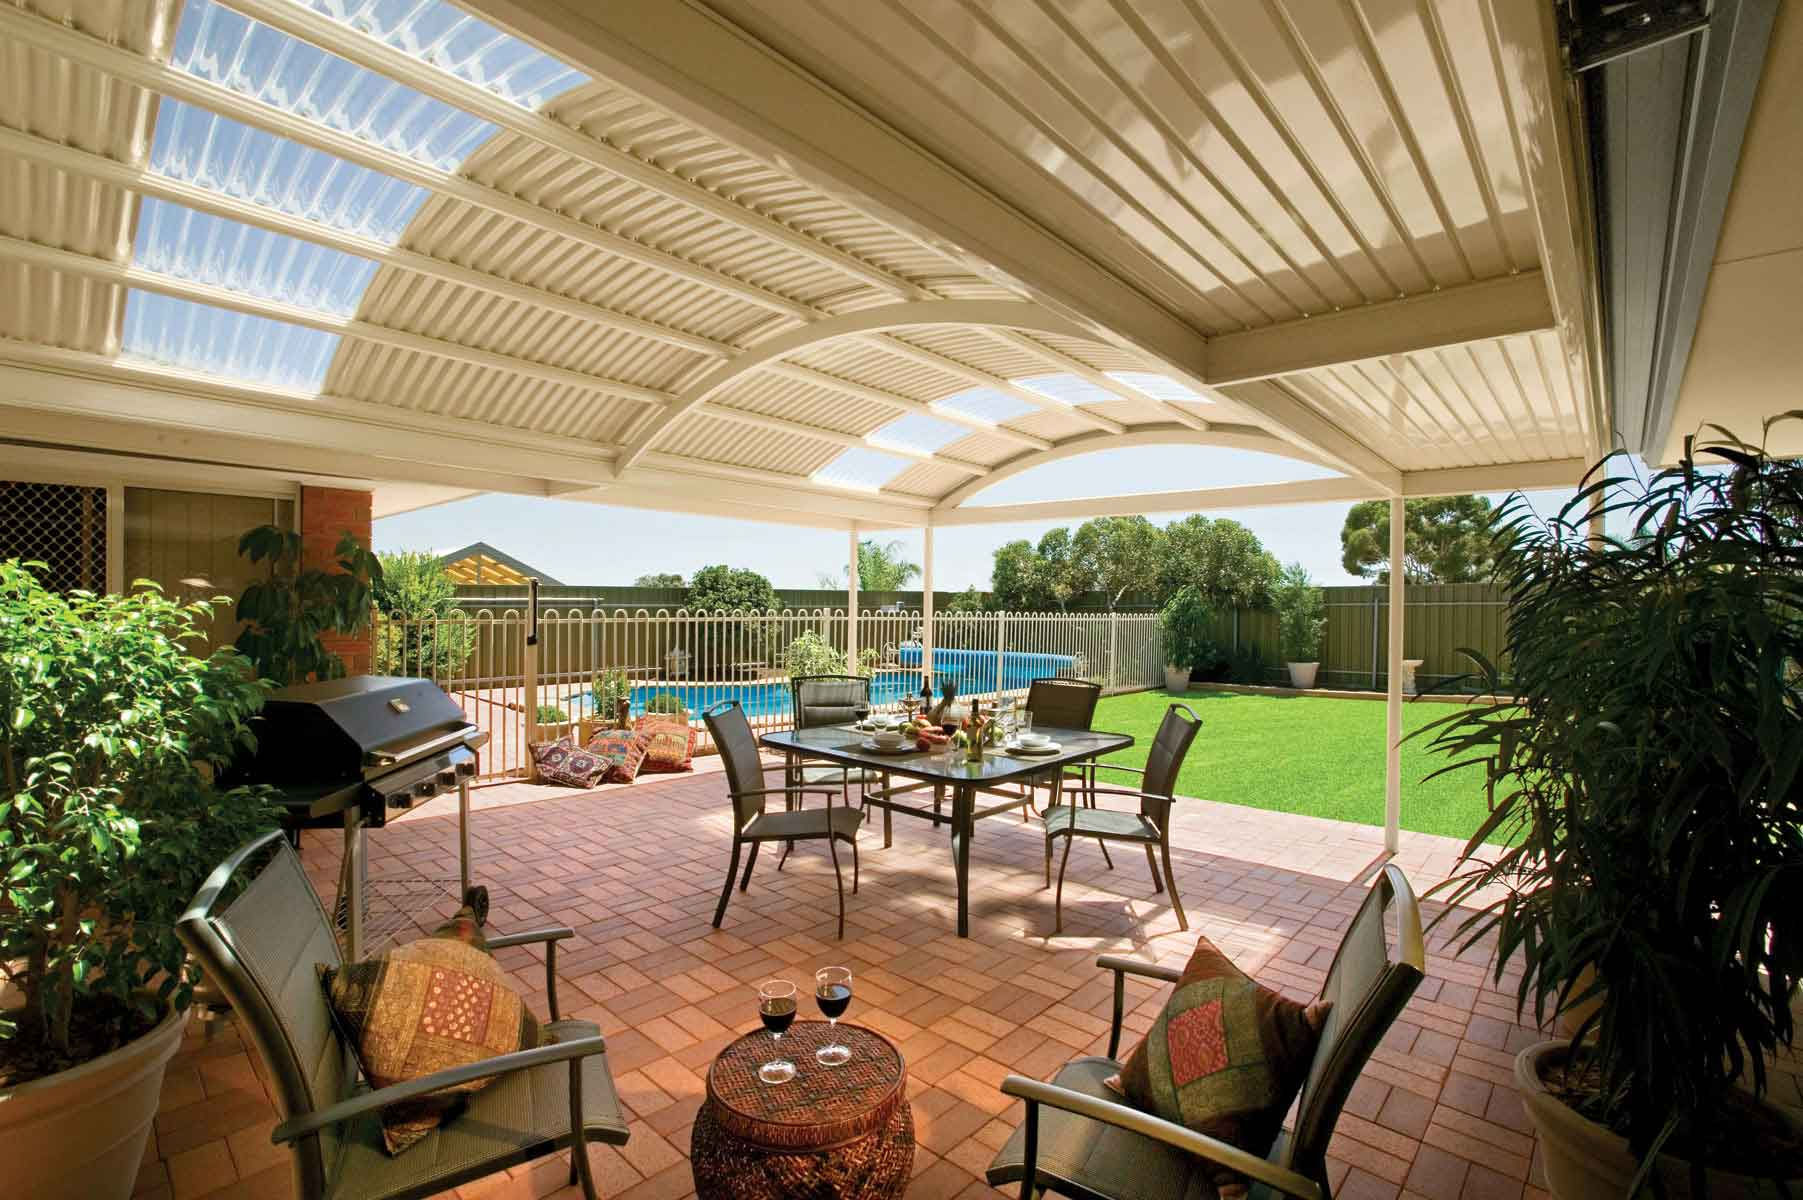 Patios-Verandah-Carport-Outback-Curved-07